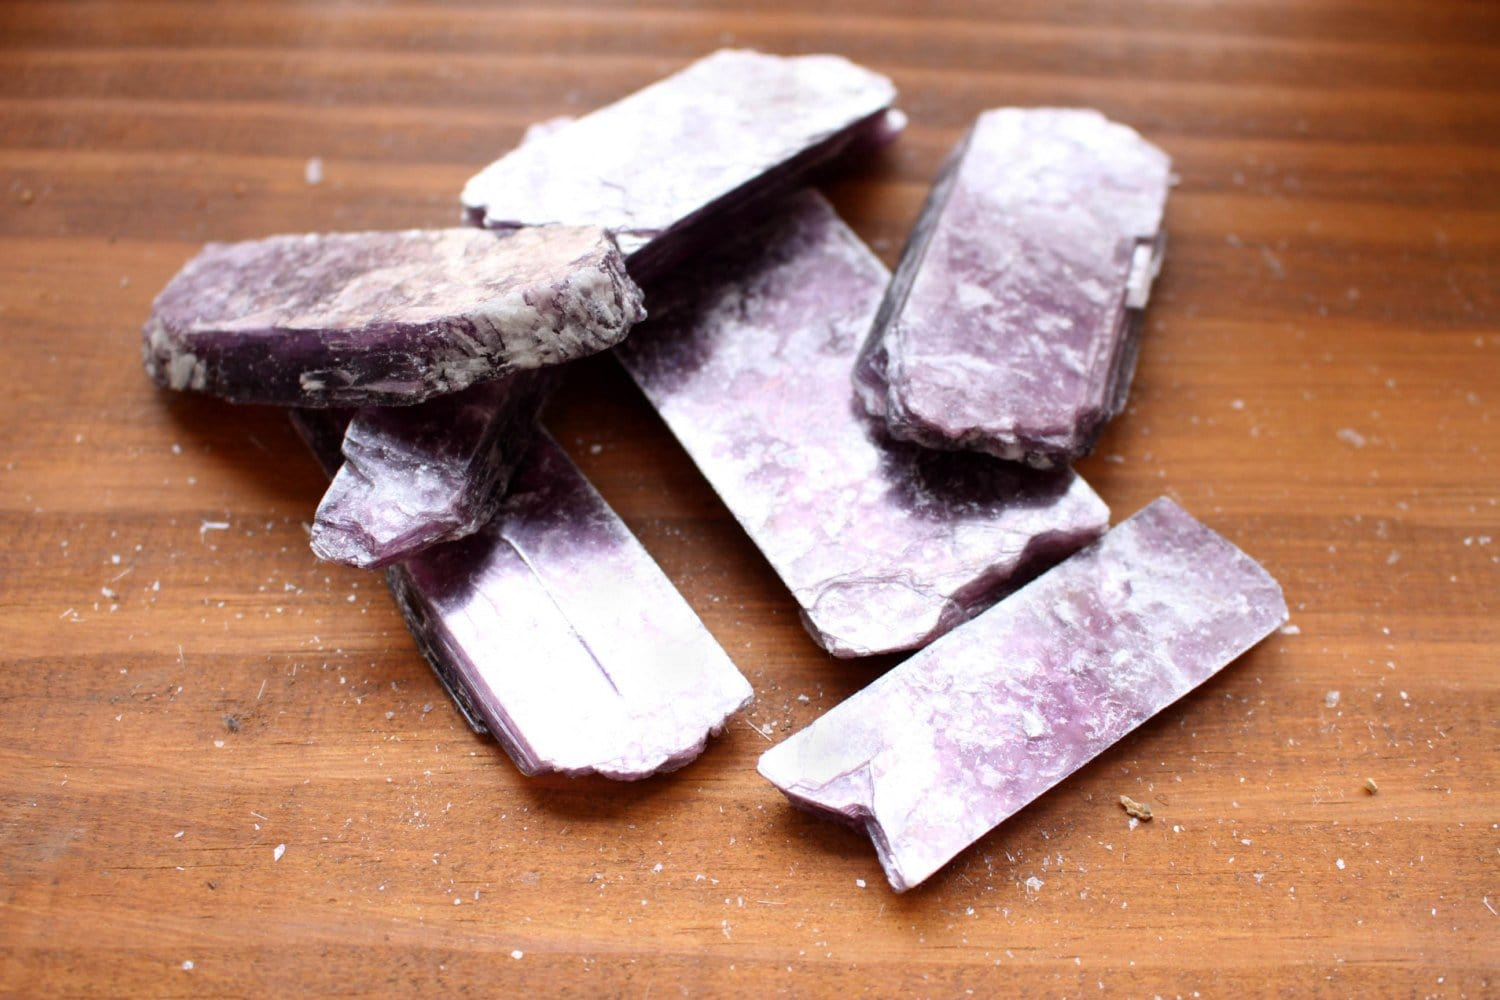 Minerals - Lepidolite Bars - Craft Supplies - Meditation Stones - Jewelry Supplies - Brazilian Energy Stones  (RK123B9)